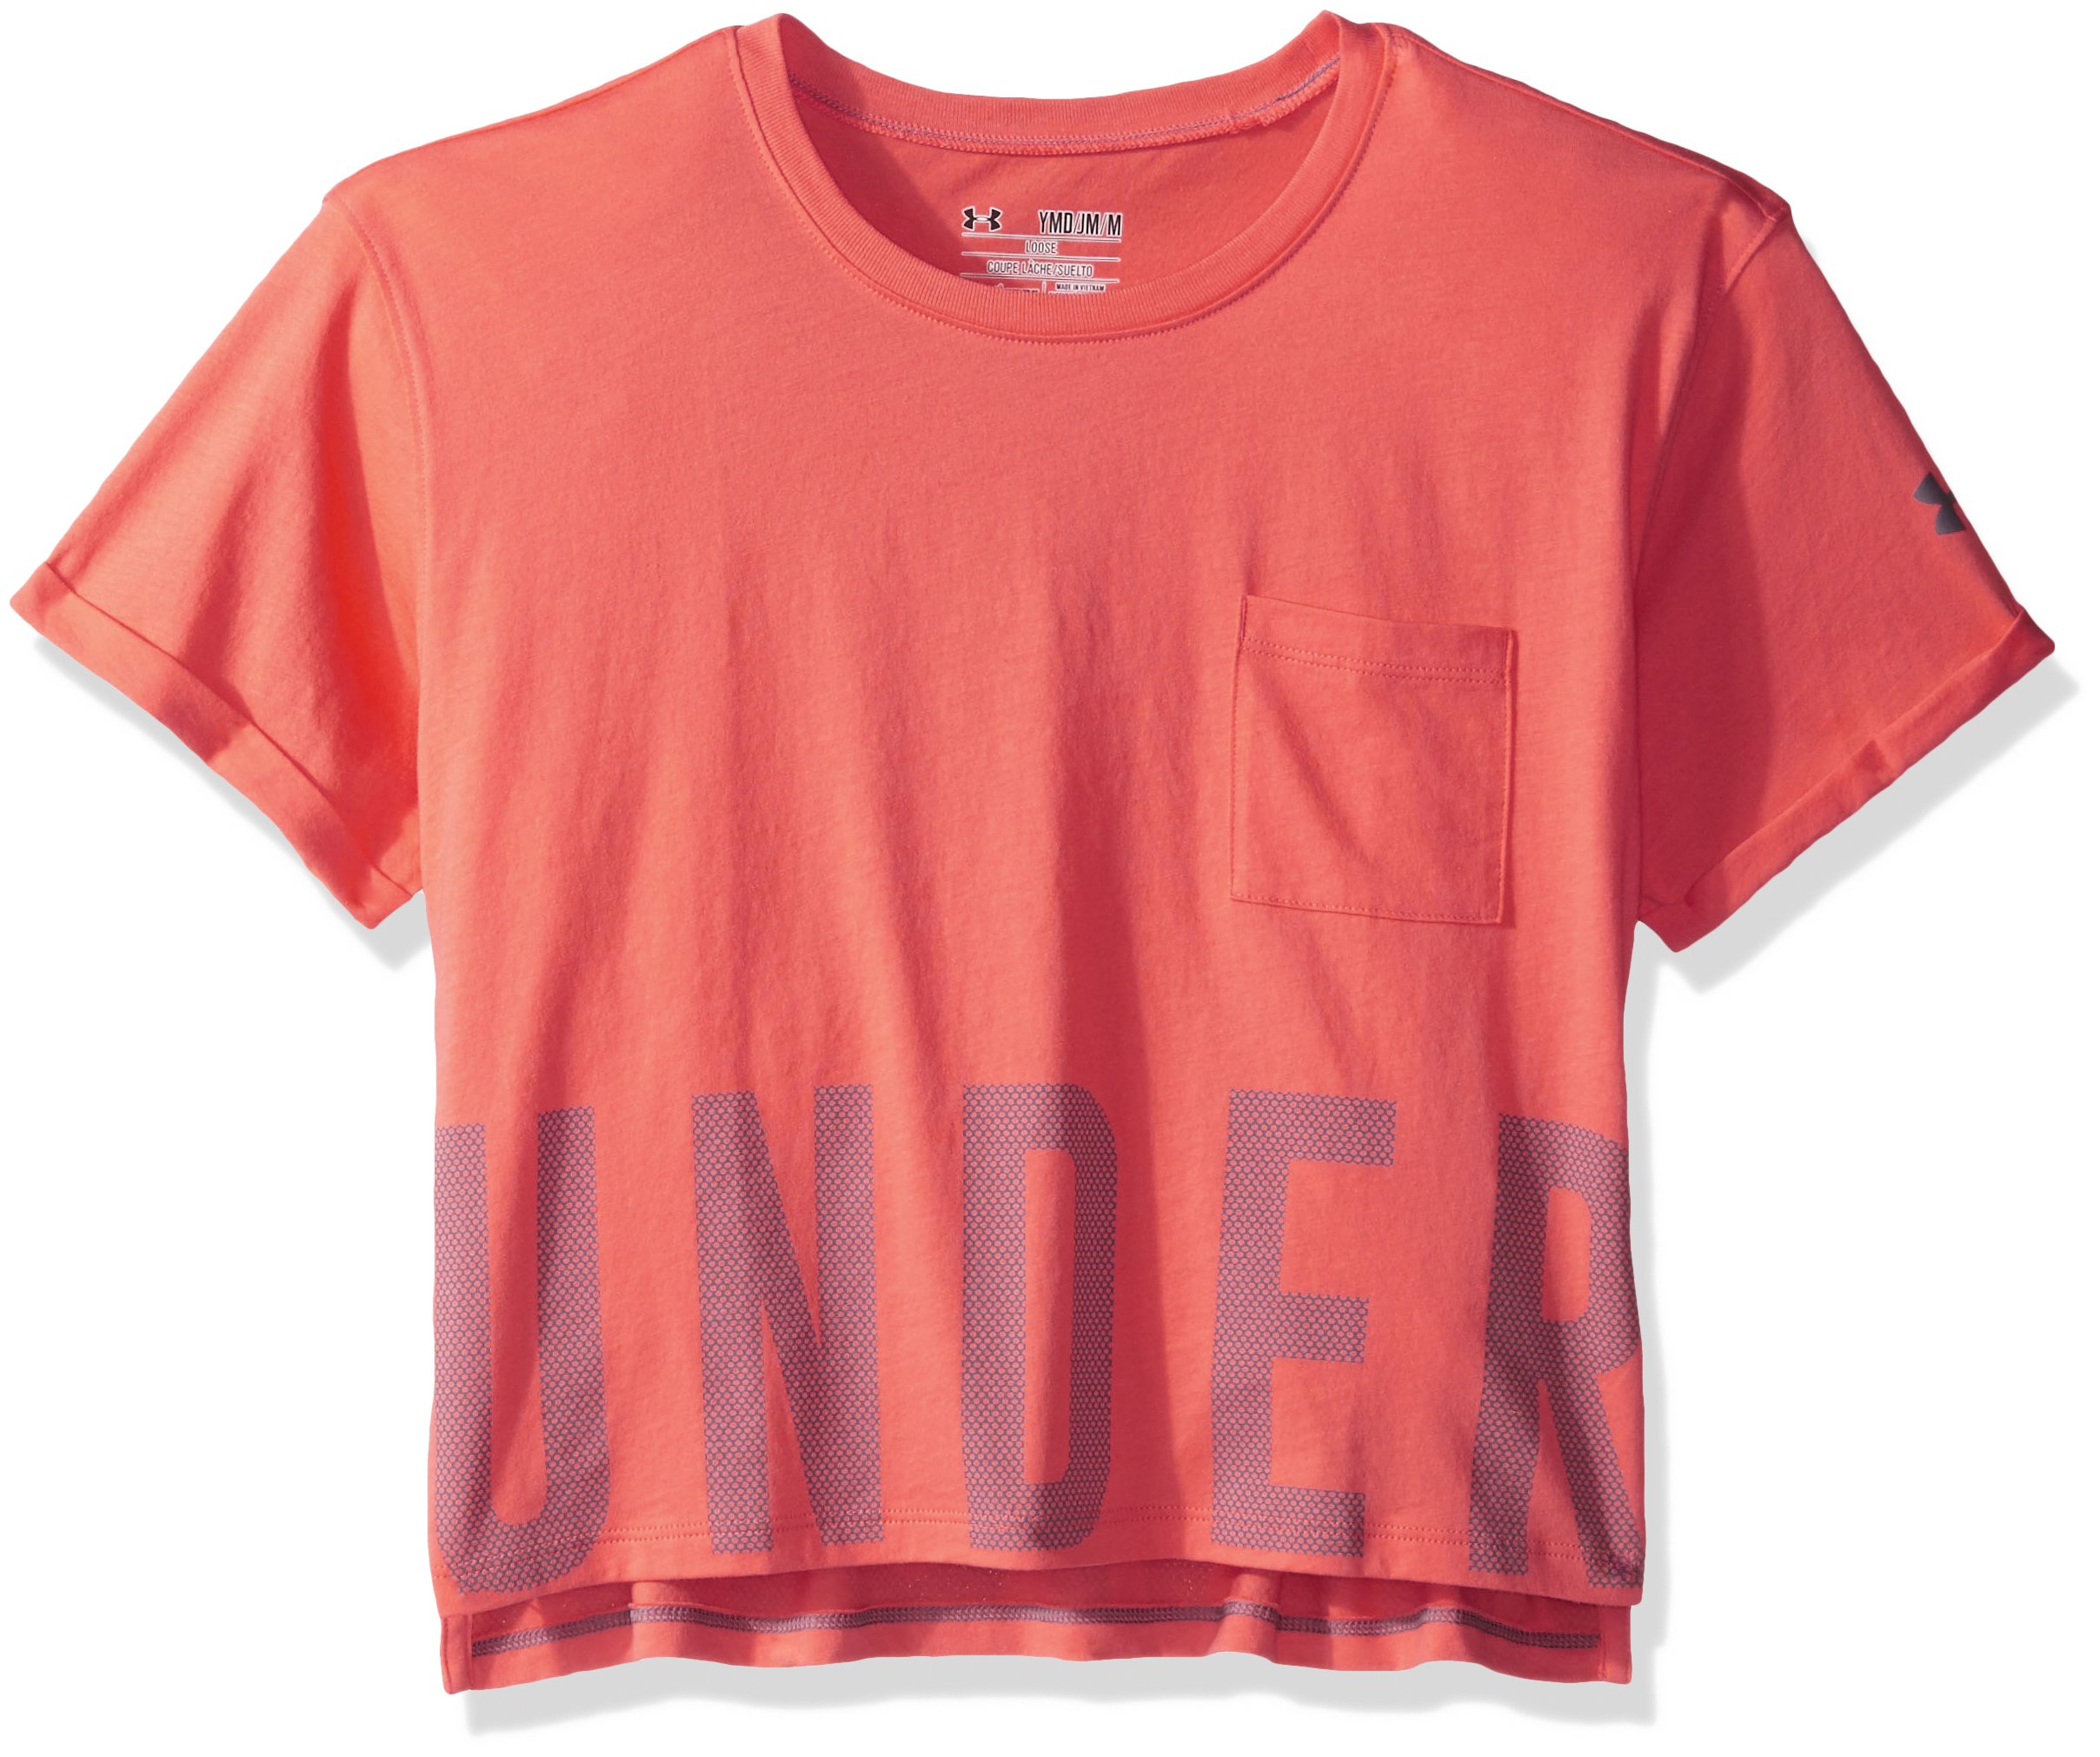 Under Armour Girls' Studio Short Sleeve T-Shirt, London Orange /Flint, Youth Medium by Under Armour